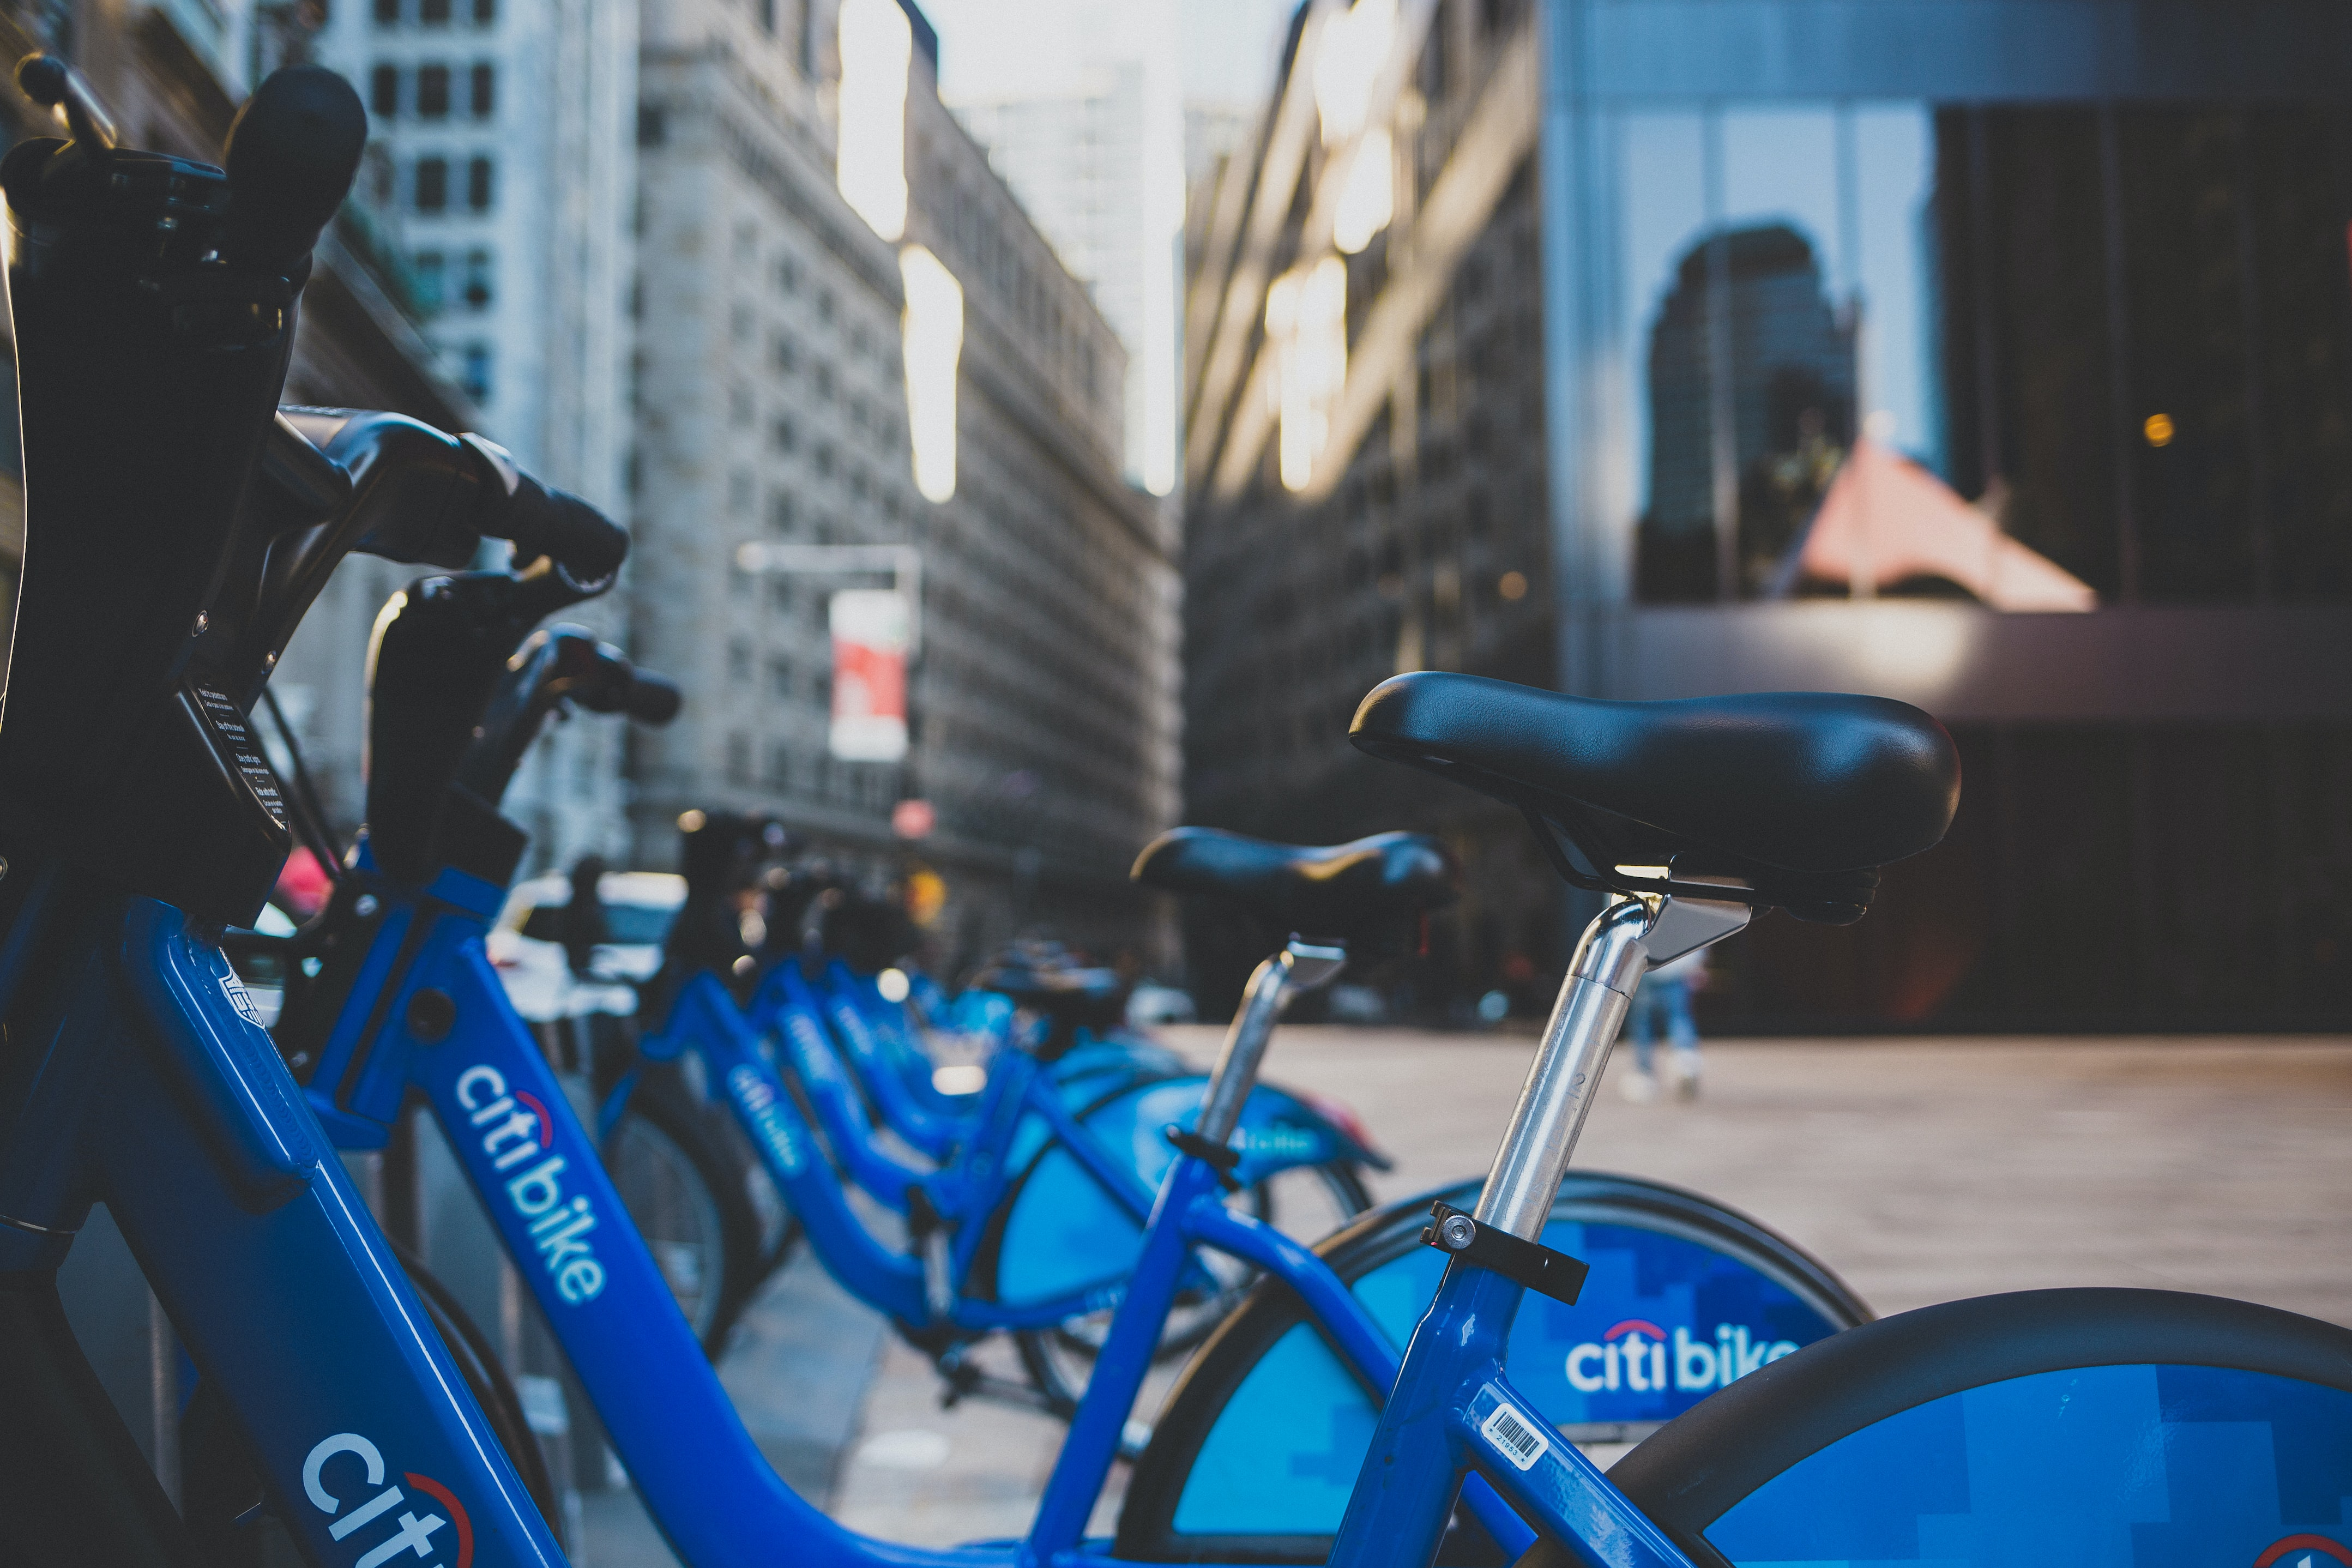 Blue Citibike bicycles are parked in a row at the World Trade Center.